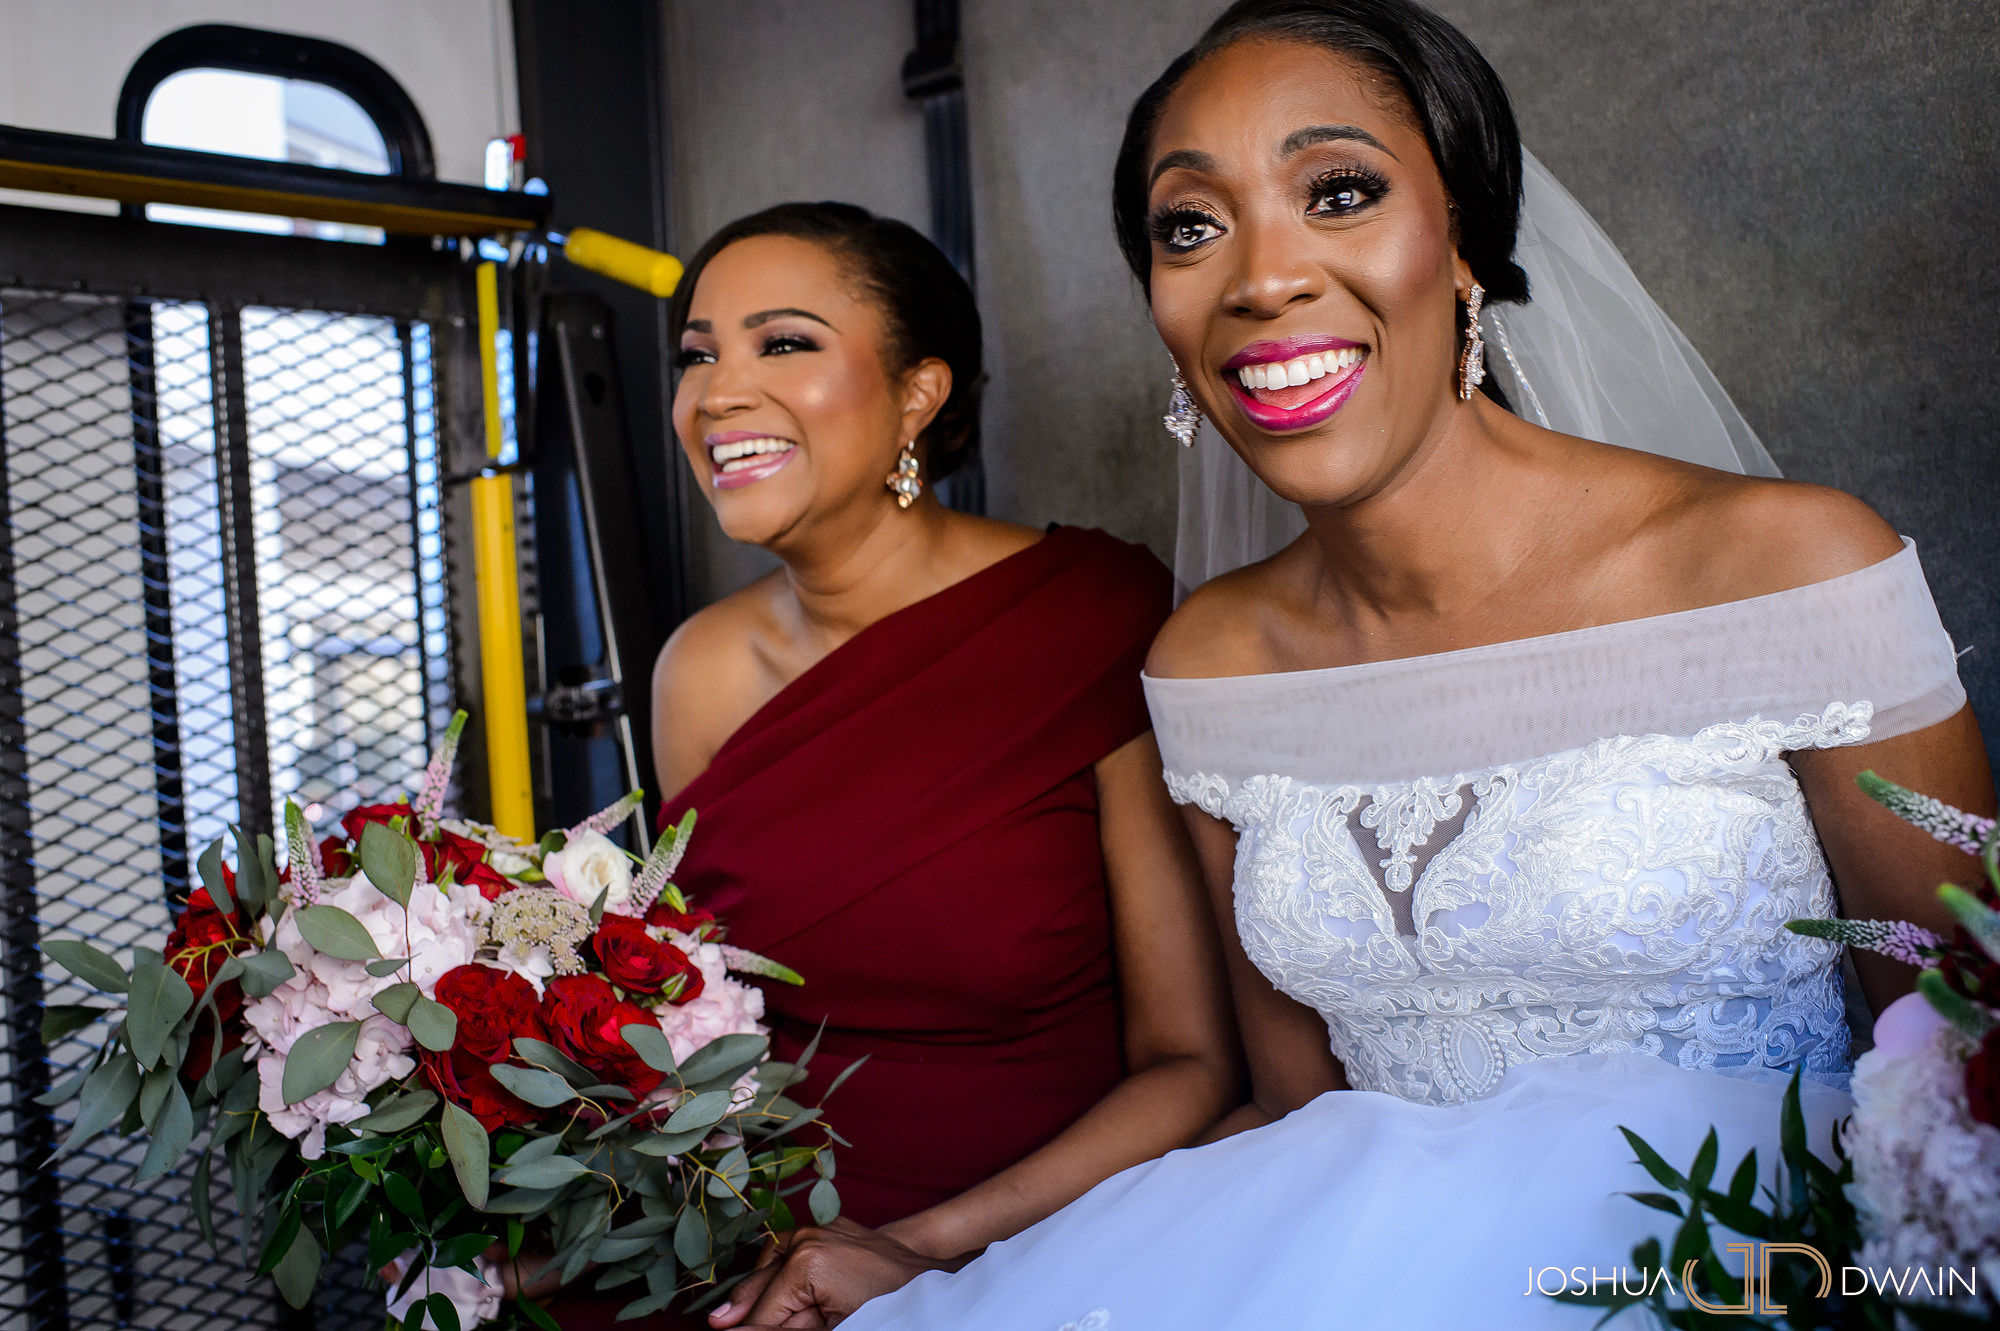 emerald-tolu--010-ronald-reagan-building-trade-center-best-washington-dc--wedding-photographer-joshua-dwain